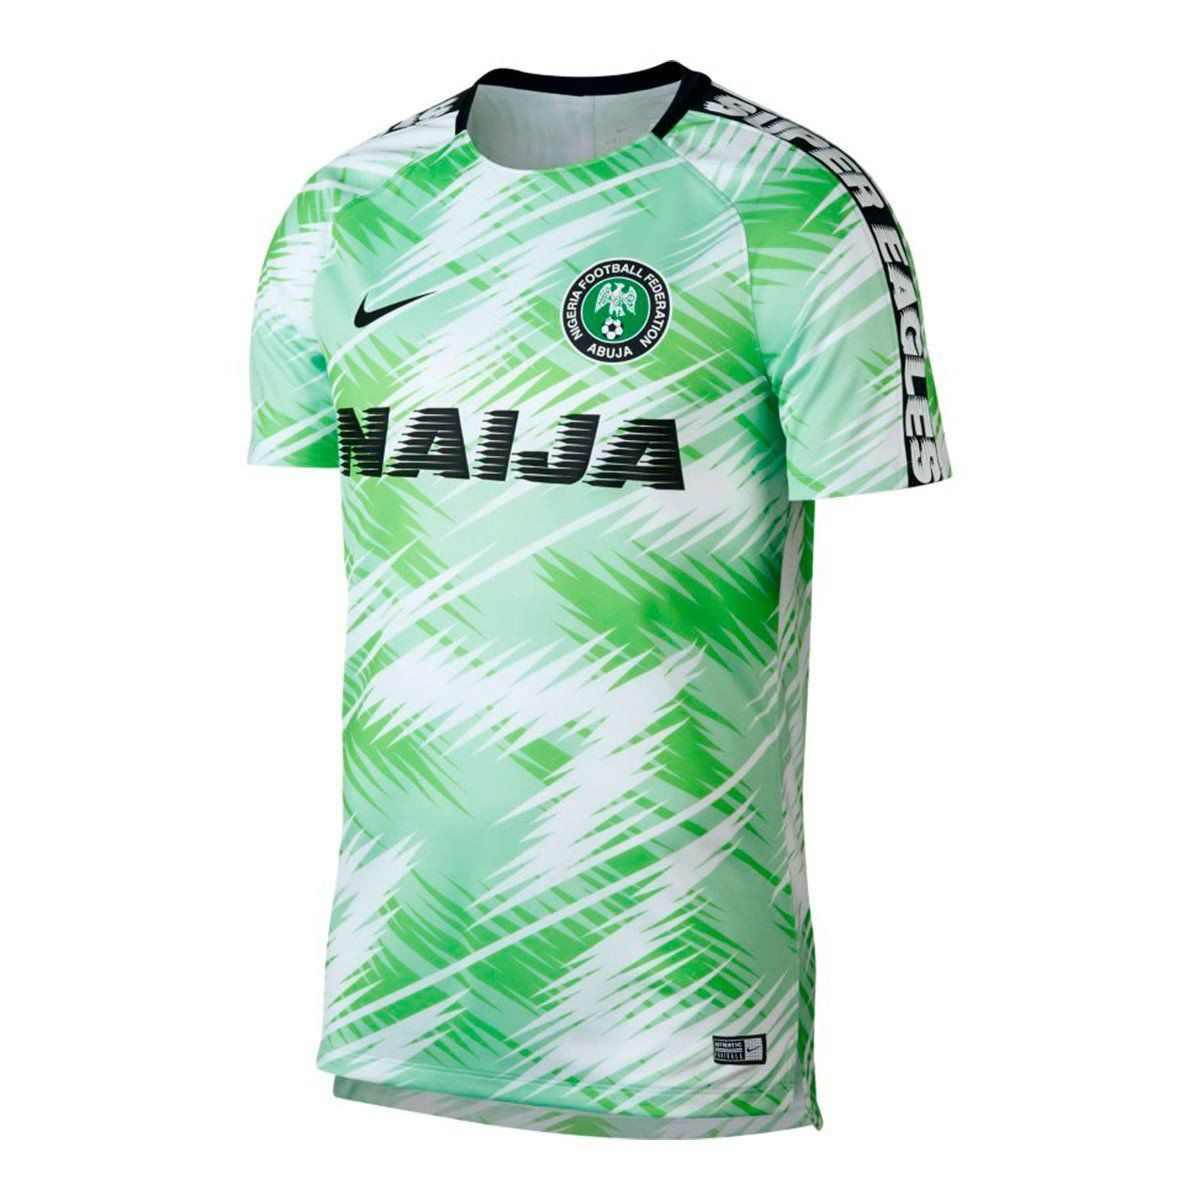 Nike Nigeria Dry Squad Gx Training Jersey 2018 2019 England Thecotswolds Holidaycottage Bbctravel Camisolas De Futebol Camisas De Futebol Roupa De Futebol